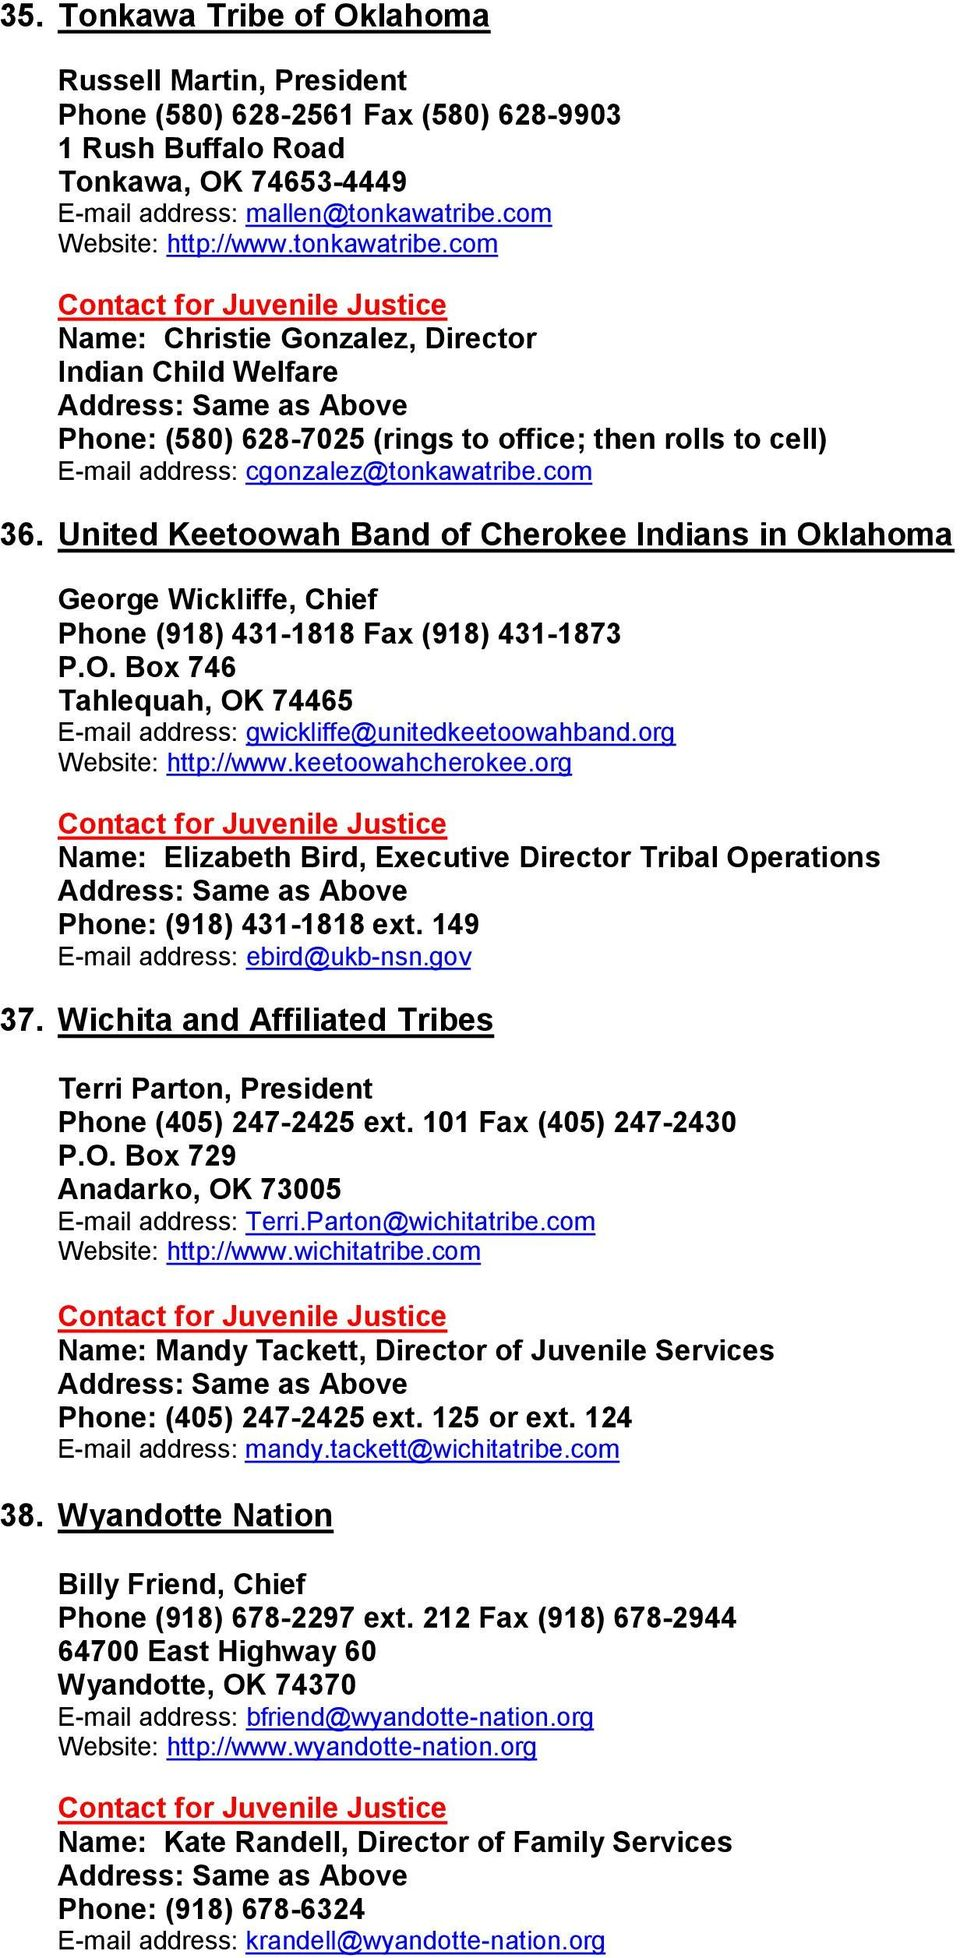 United Keetoowah Band of Cherokee Indians in Oklahoma George Wickliffe, Chief Phone (918) 431-1818 Fax (918) 431-1873 P.O. Box 746 Tahlequah, OK 74465 E-mail address: gwickliffe@unitedkeetoowahband.